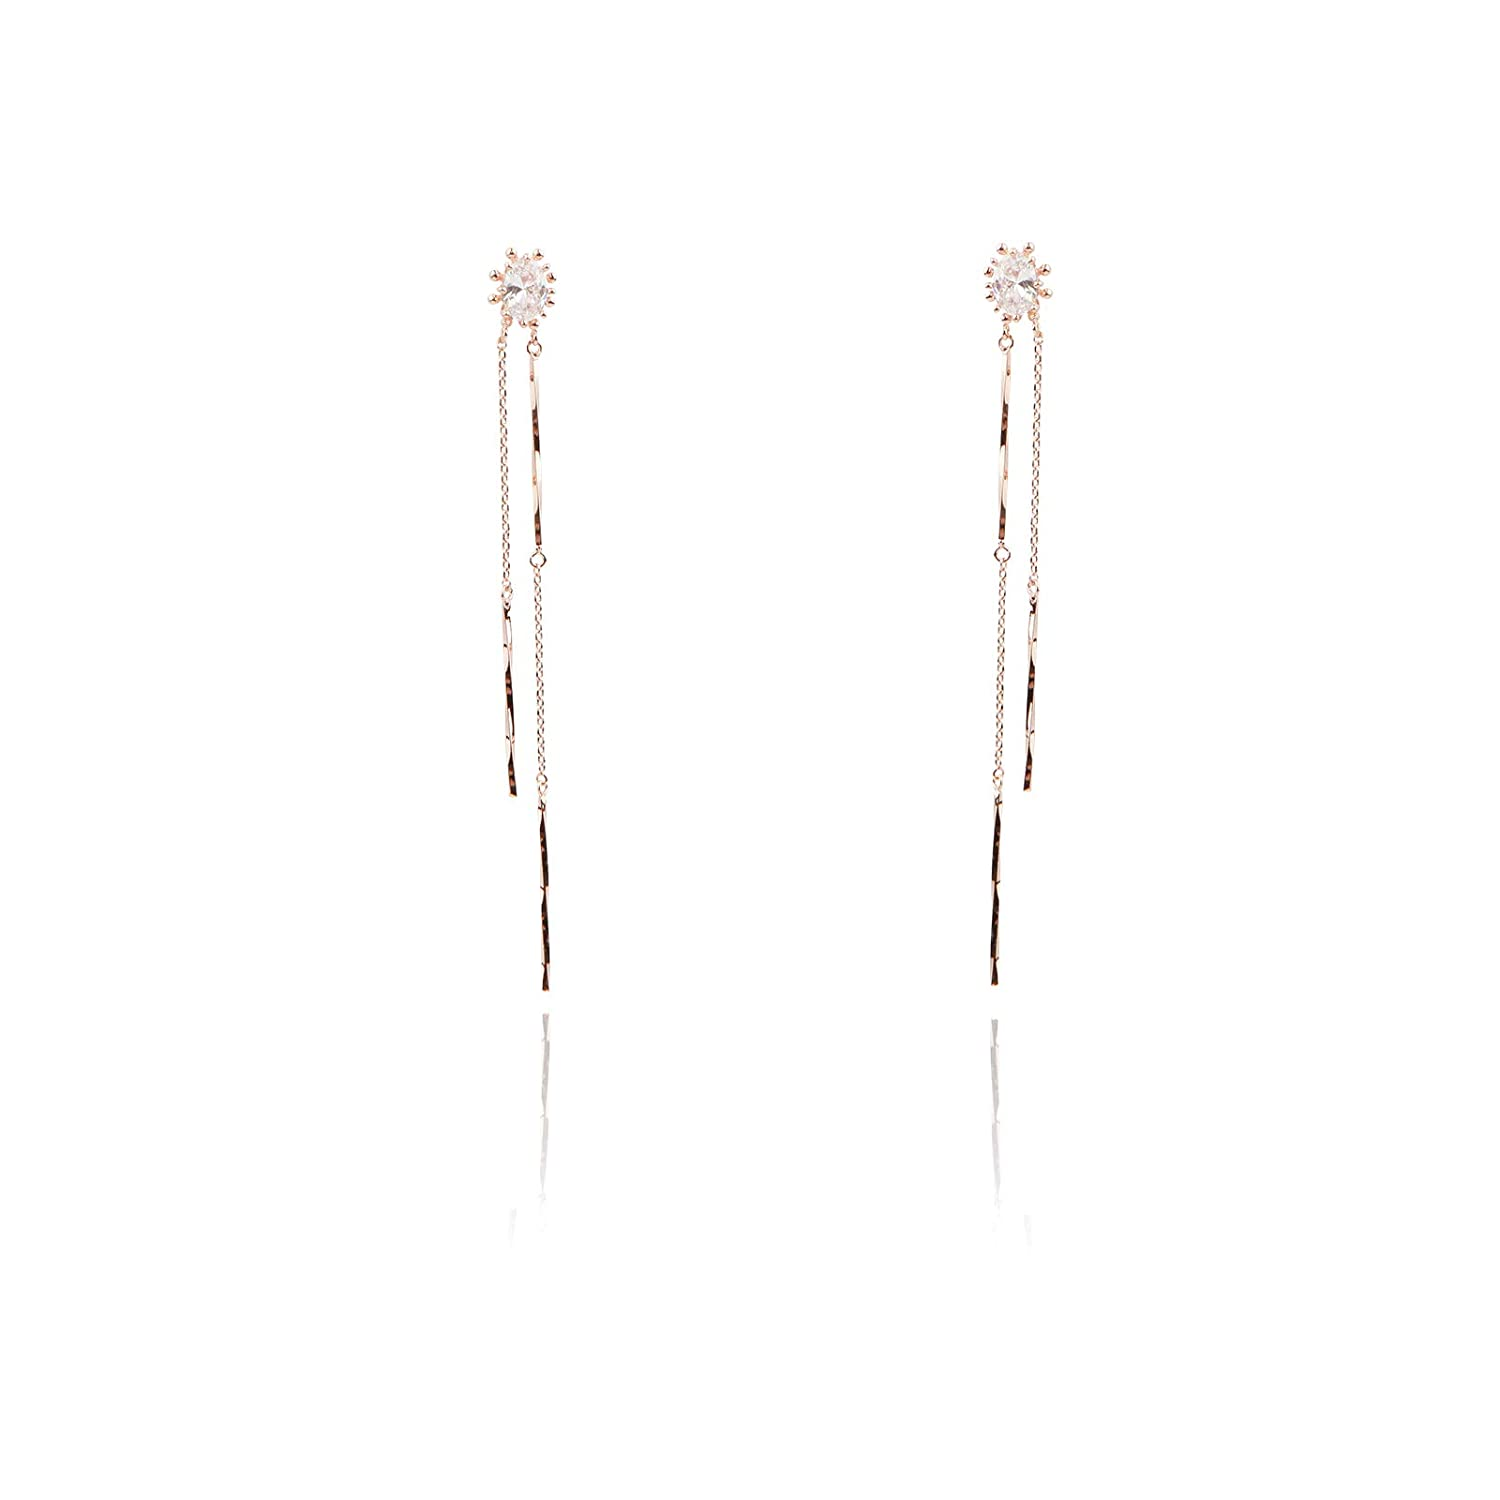 JEWLIX Korea Cubic Zirconia Bar Stick Chain Drop Earrings